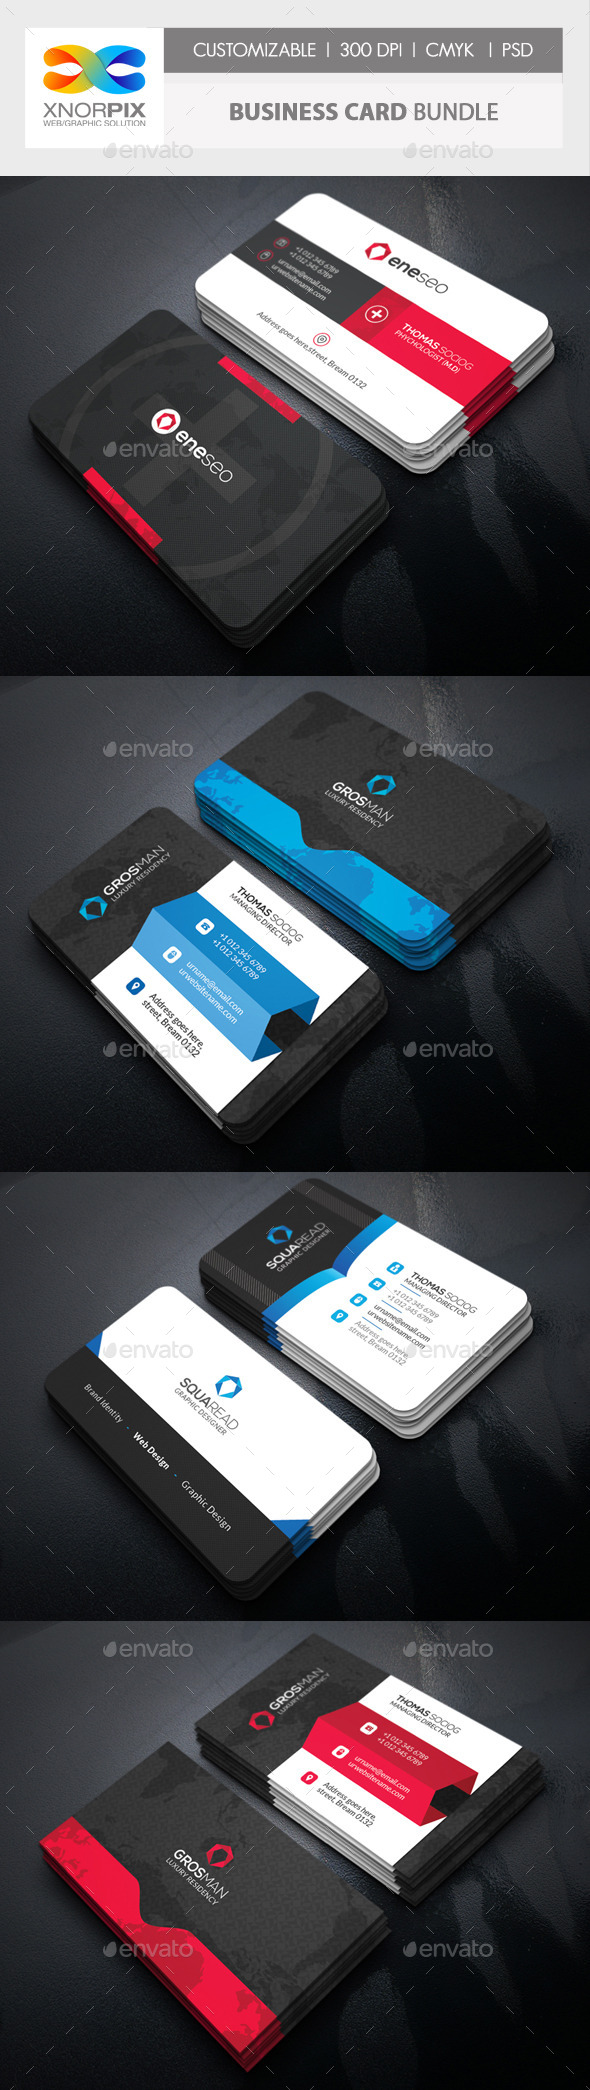 Business Card Bundle 3 in 1-Vol 57 - Corporate Business Cards